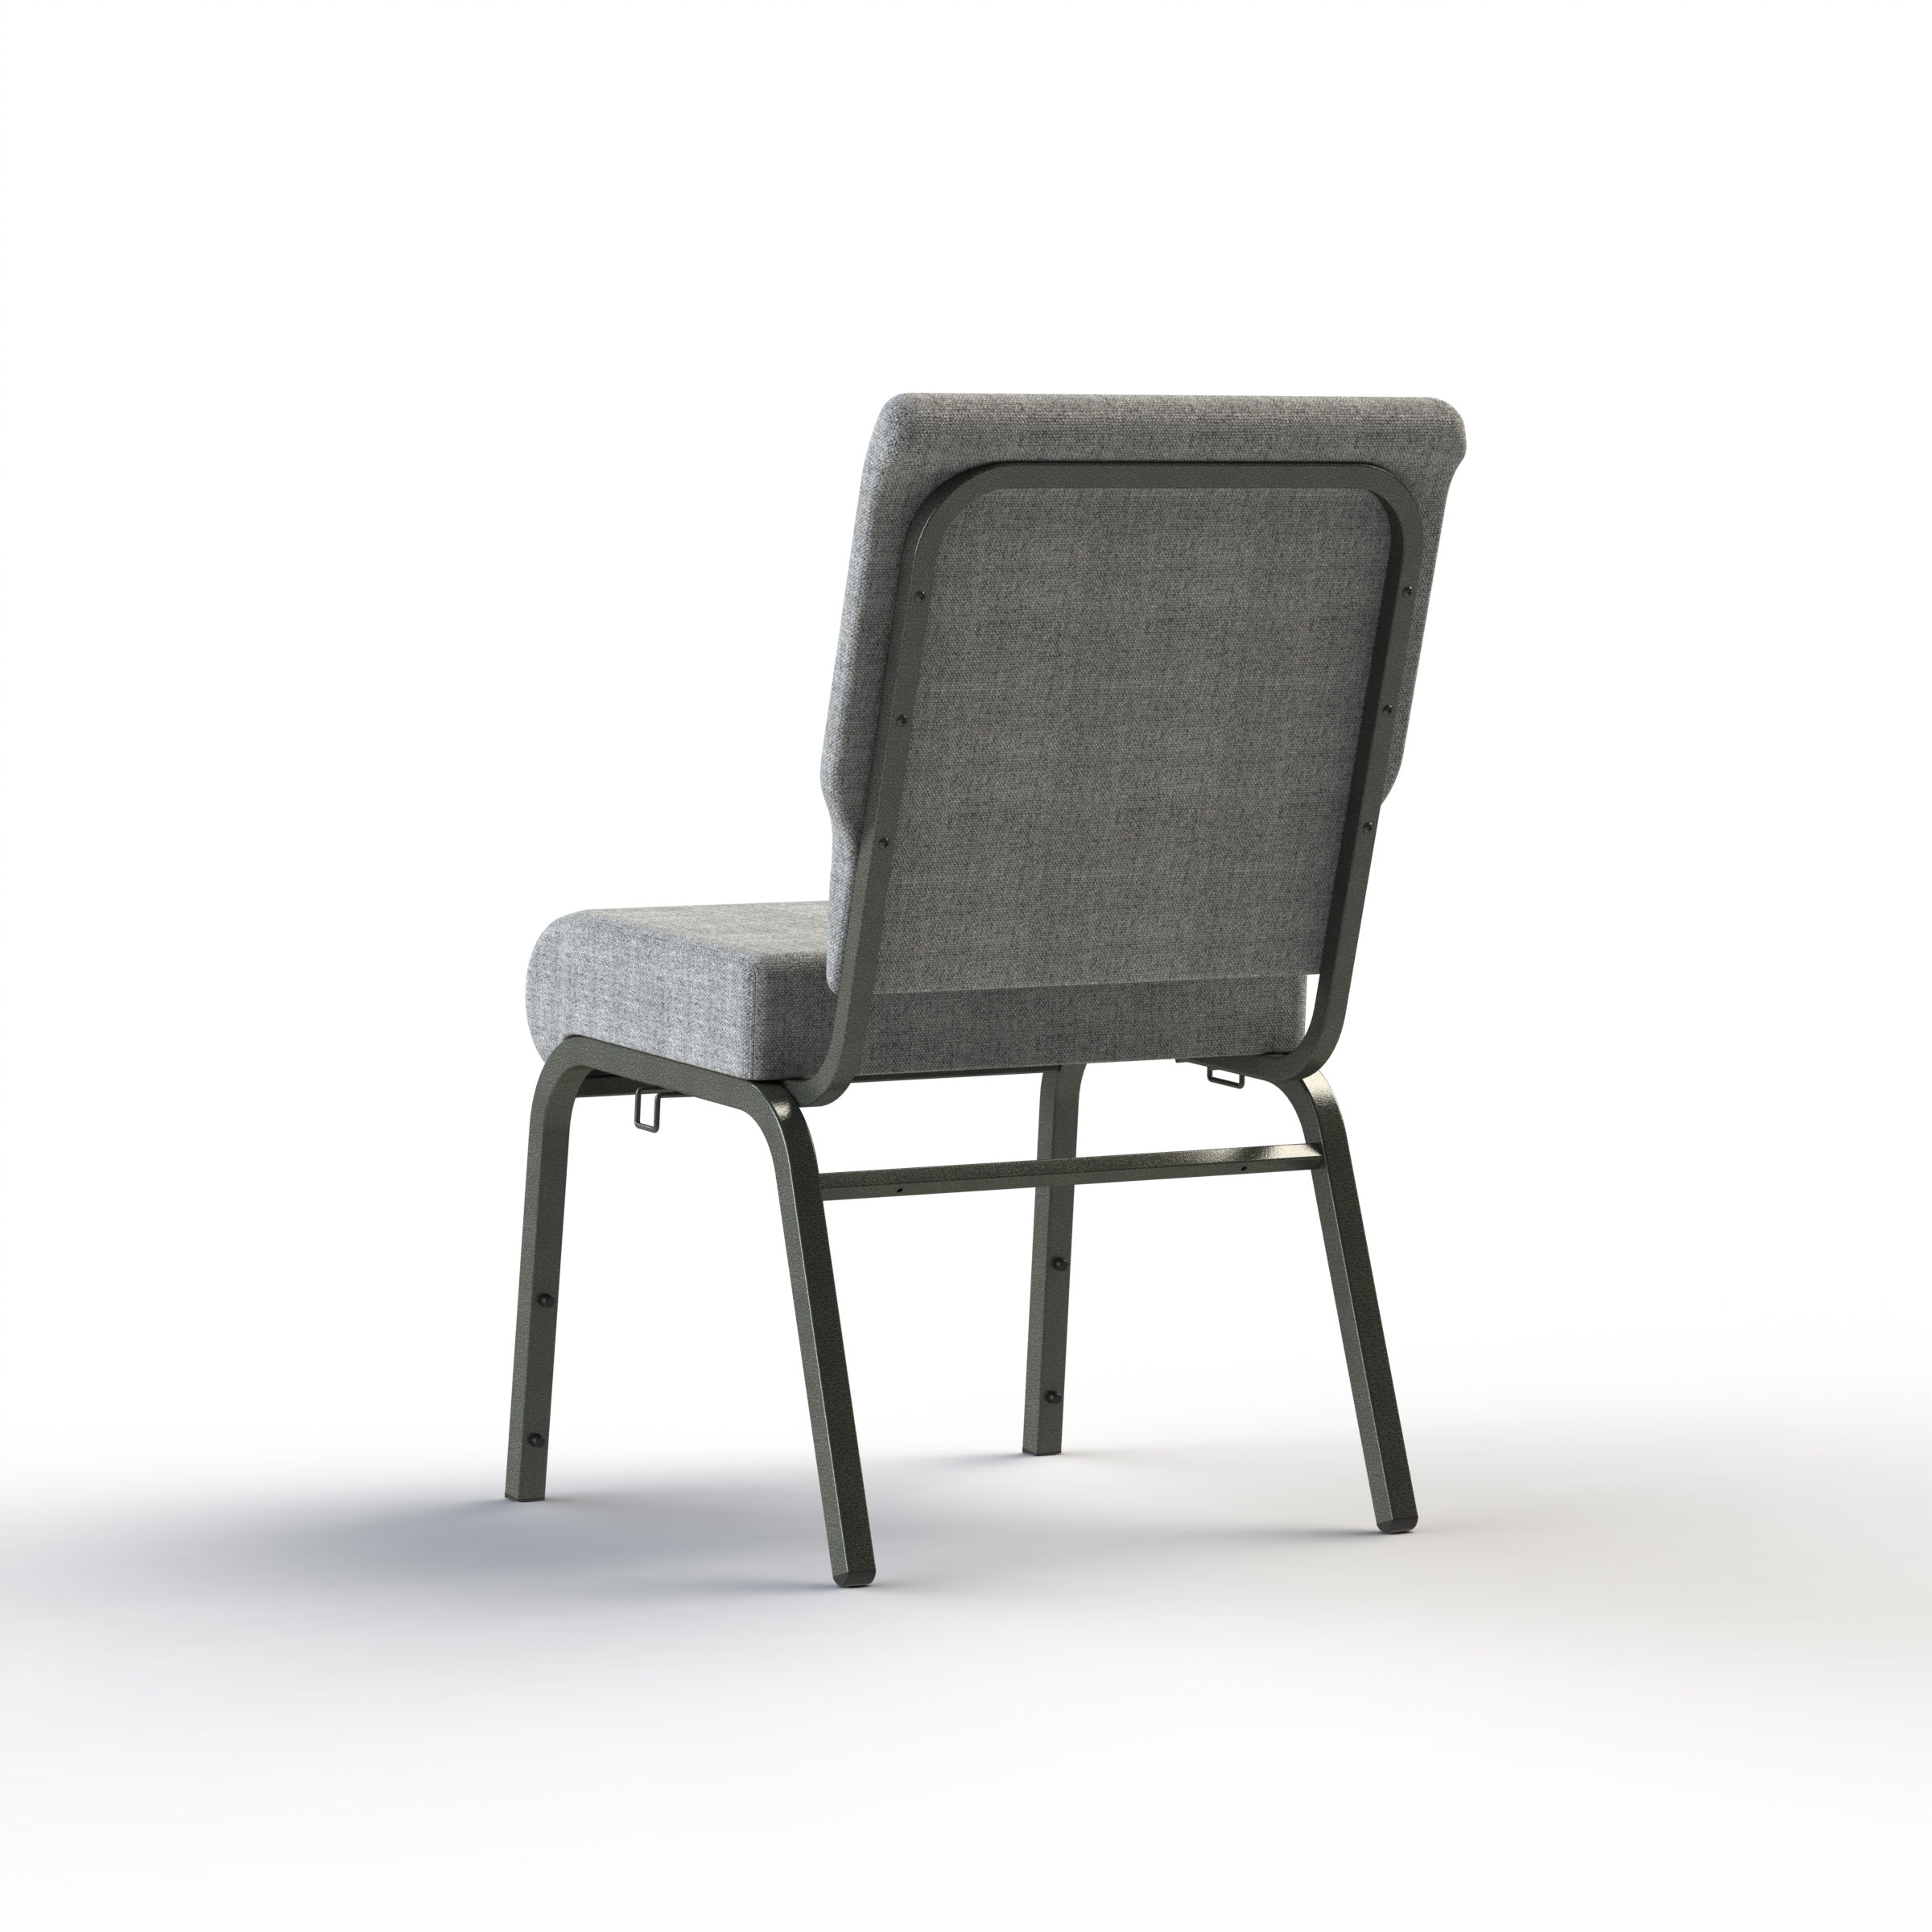 rear view of the foundation church chair from woods church interiors available in quick ship and